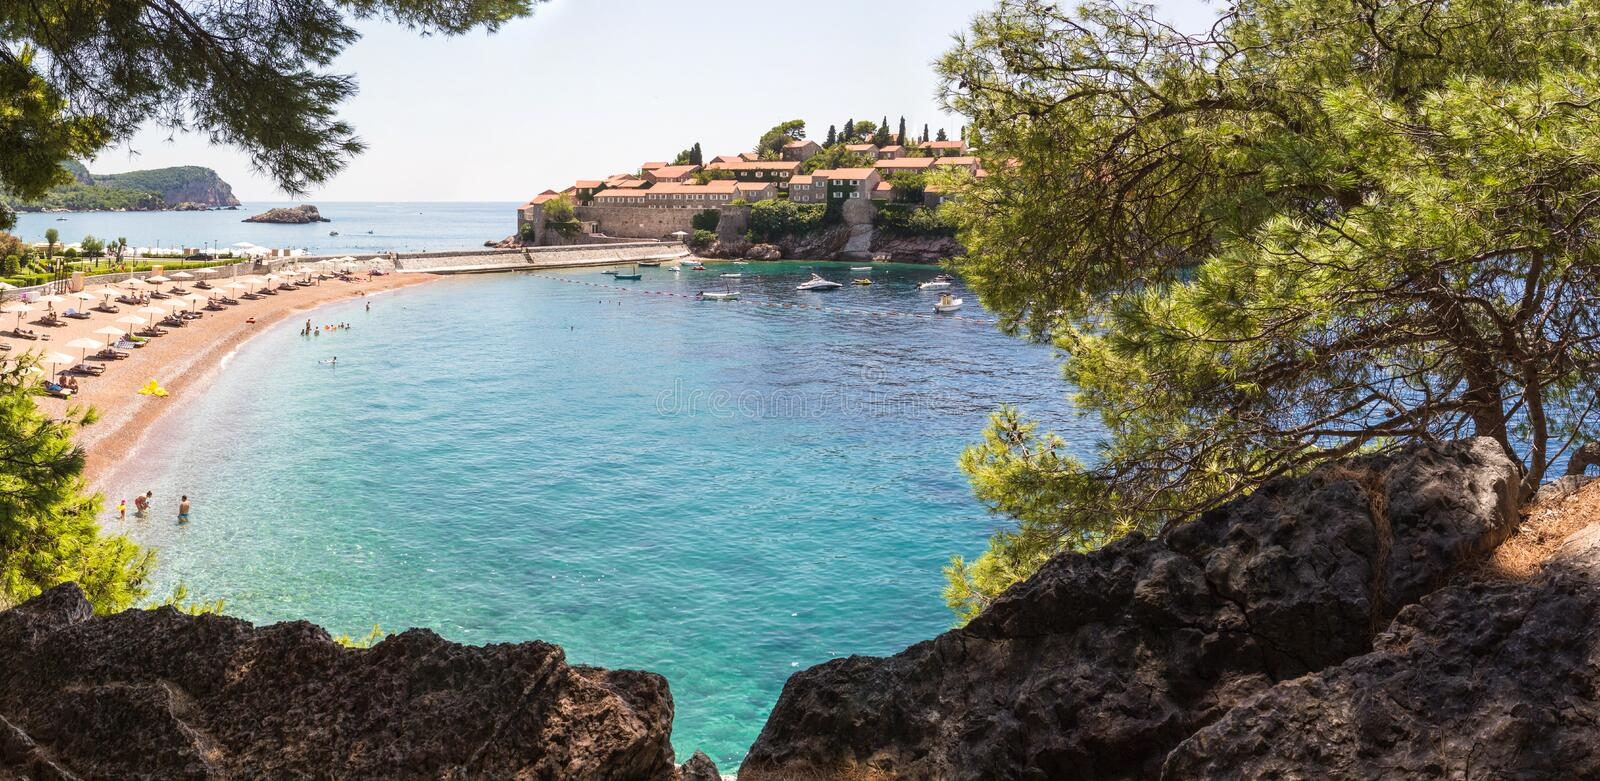 Panorama overlooking the island of St. Stephen, elite beach and the bay with turquoise water. MONTENEGRO, BUDVA, SVETI-STEFAN, 02 August 2014: Panorama royalty free stock photography